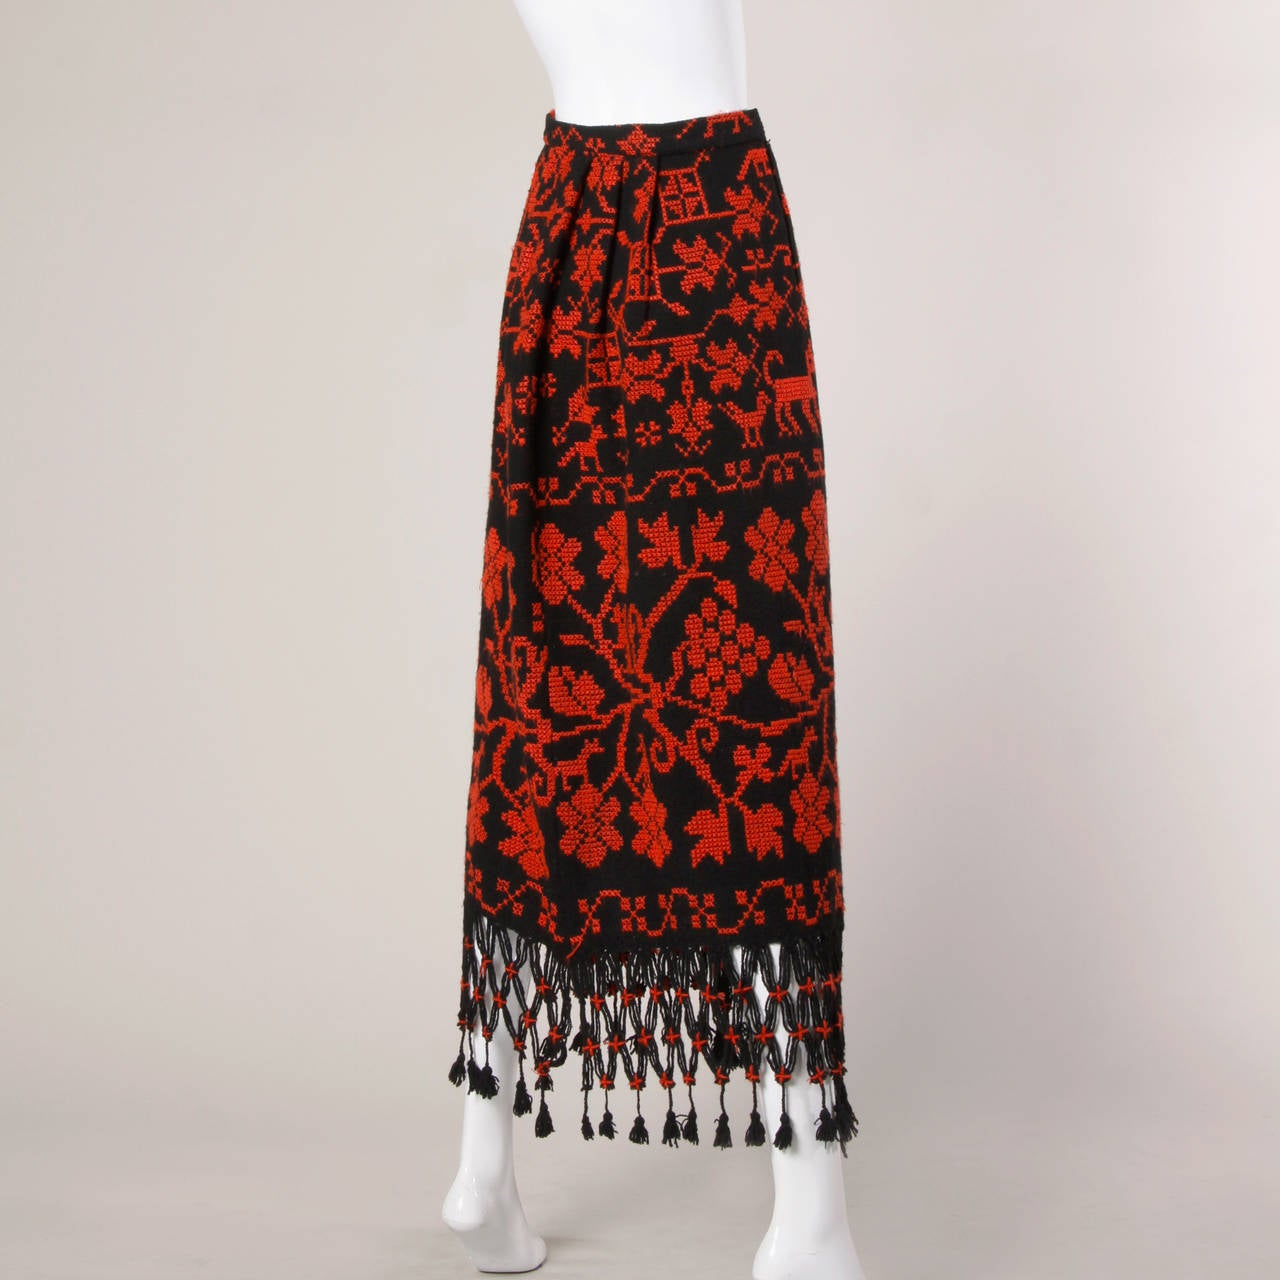 Vintage Hand Embroidered Cross Stitch Maxi Skirt 4